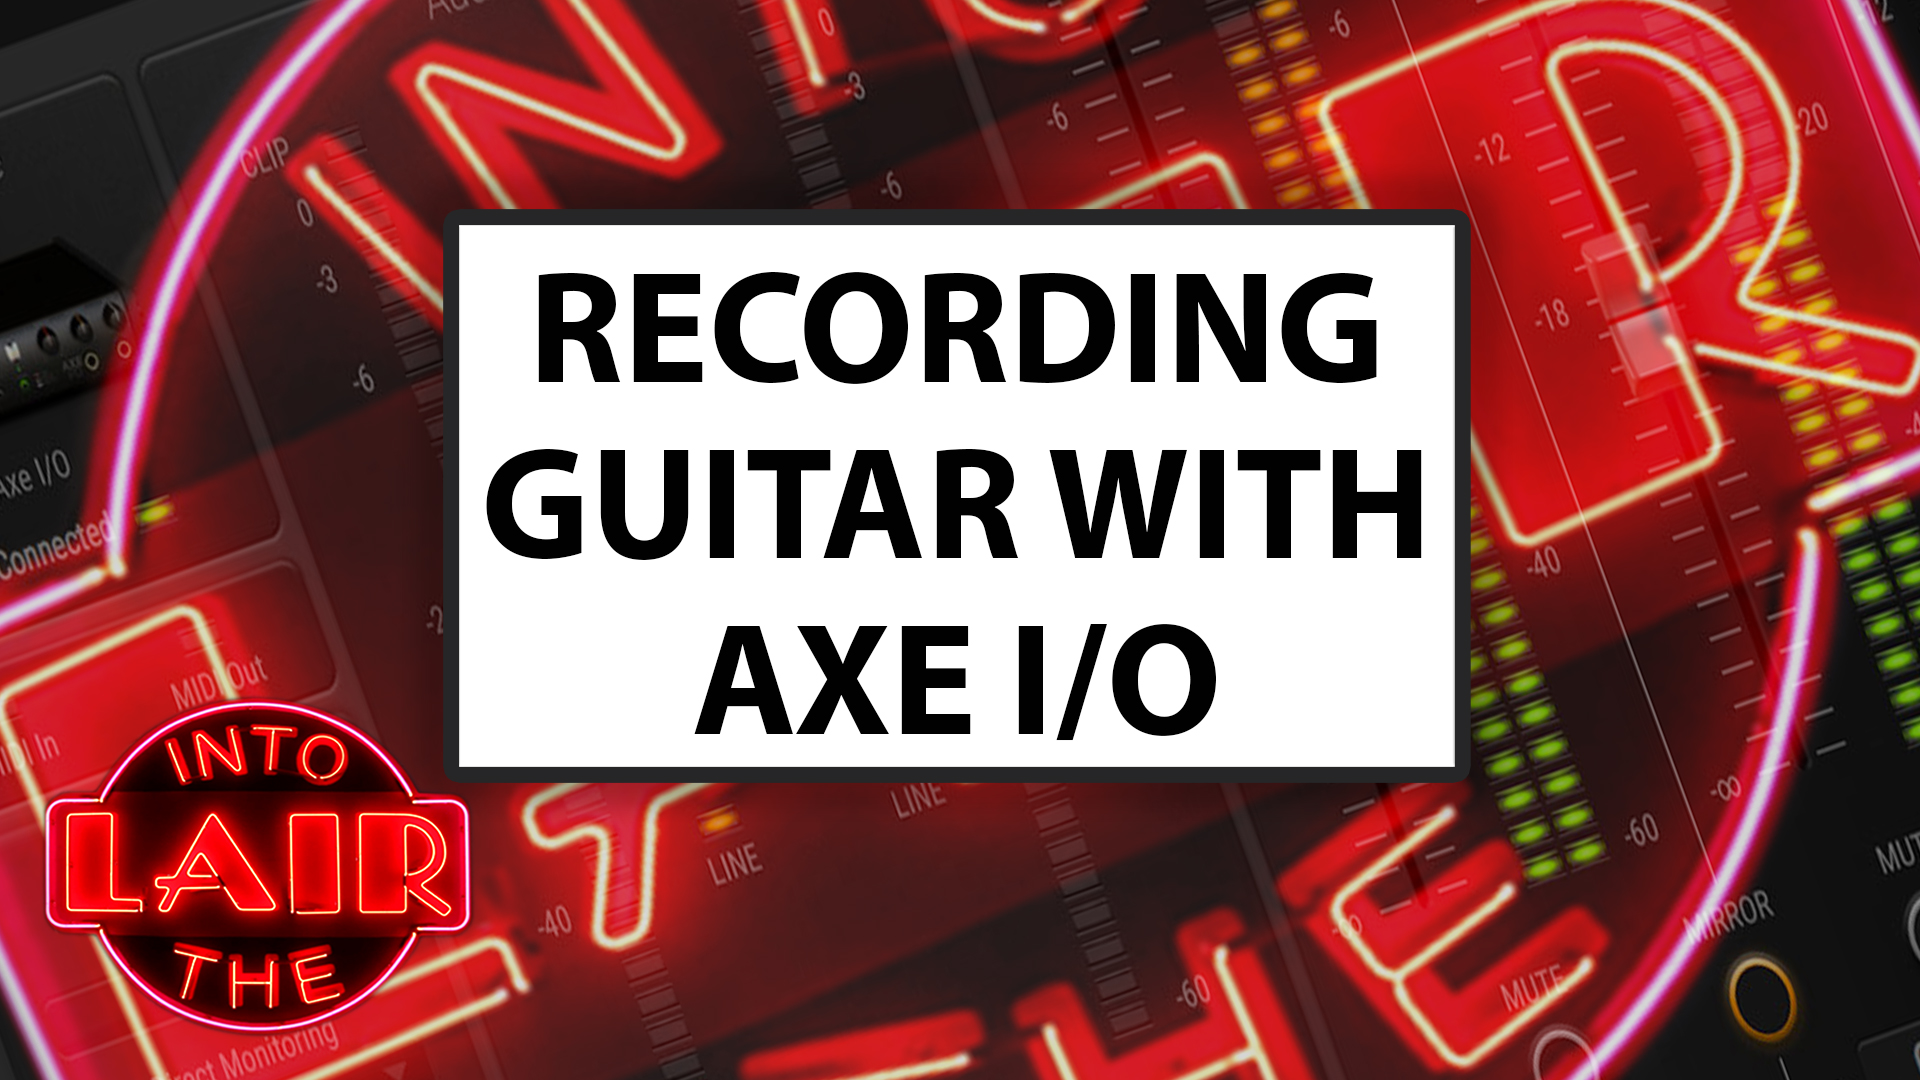 Recording Guitar with AXE I/O